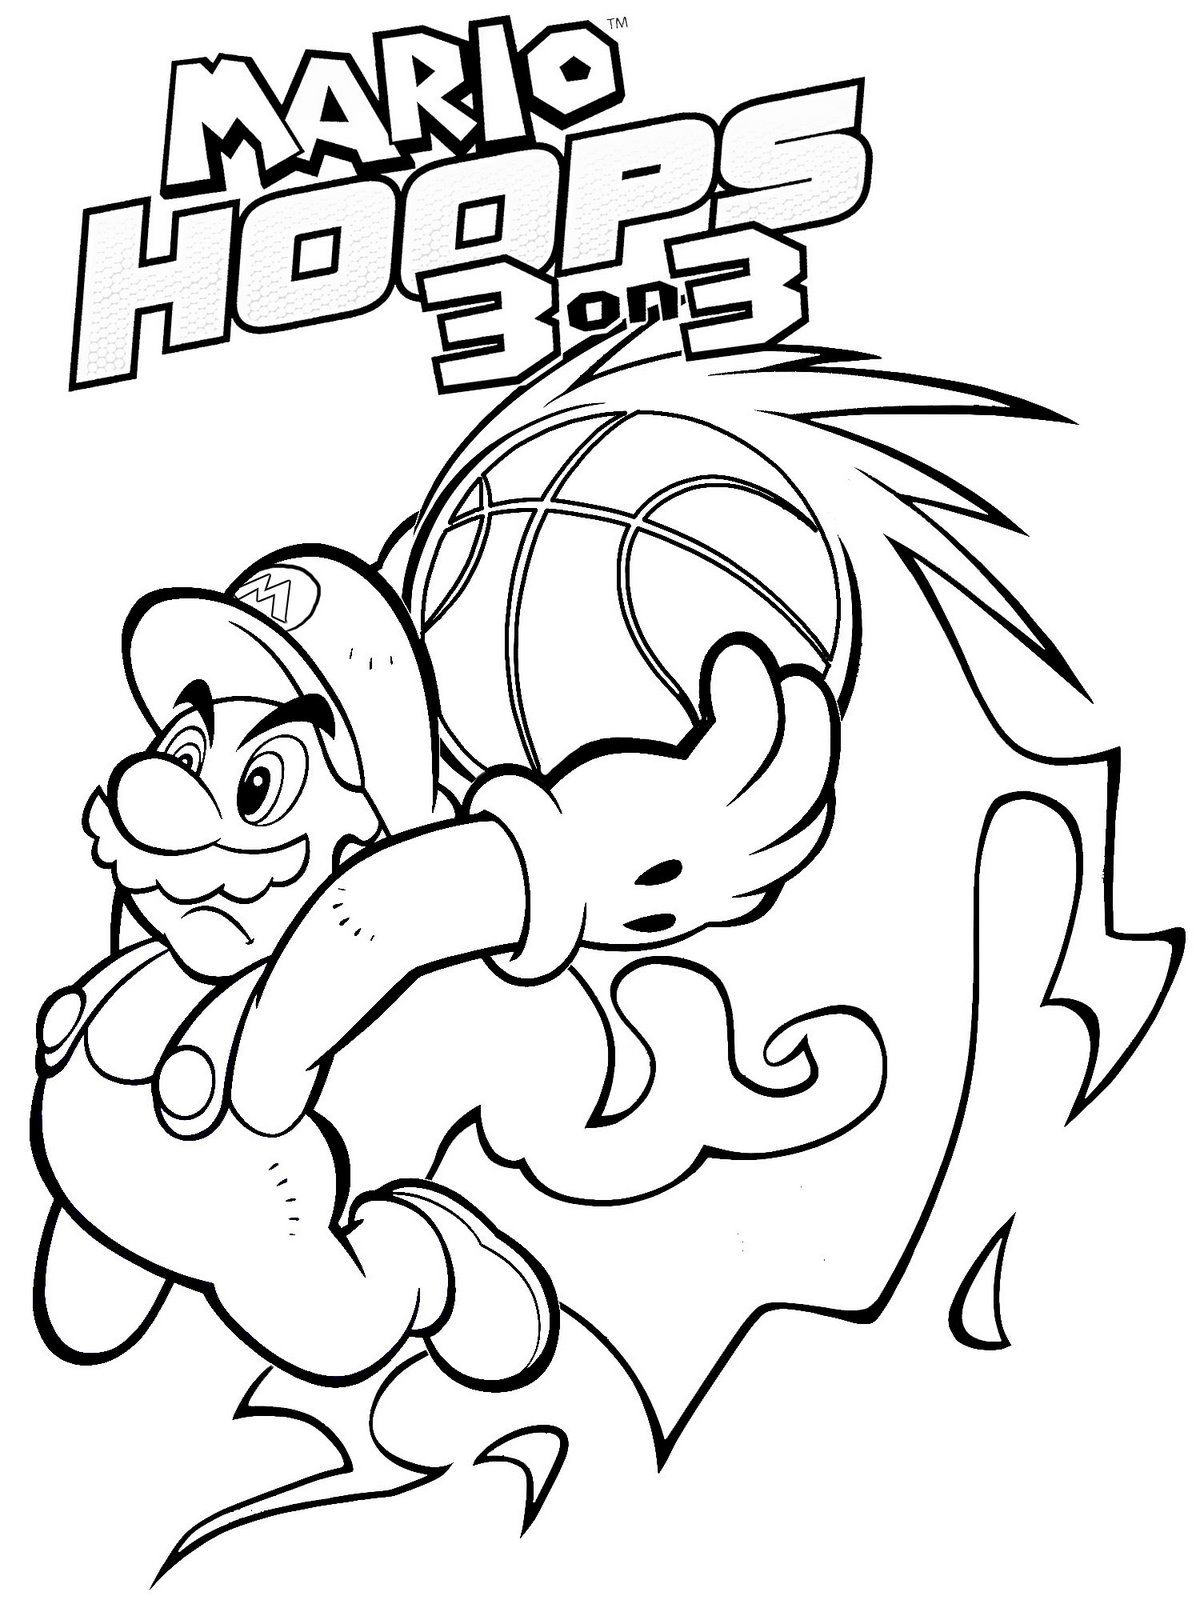 9 Free Mario Bros Coloring Pages For Kids >> Disney Coloring Pages